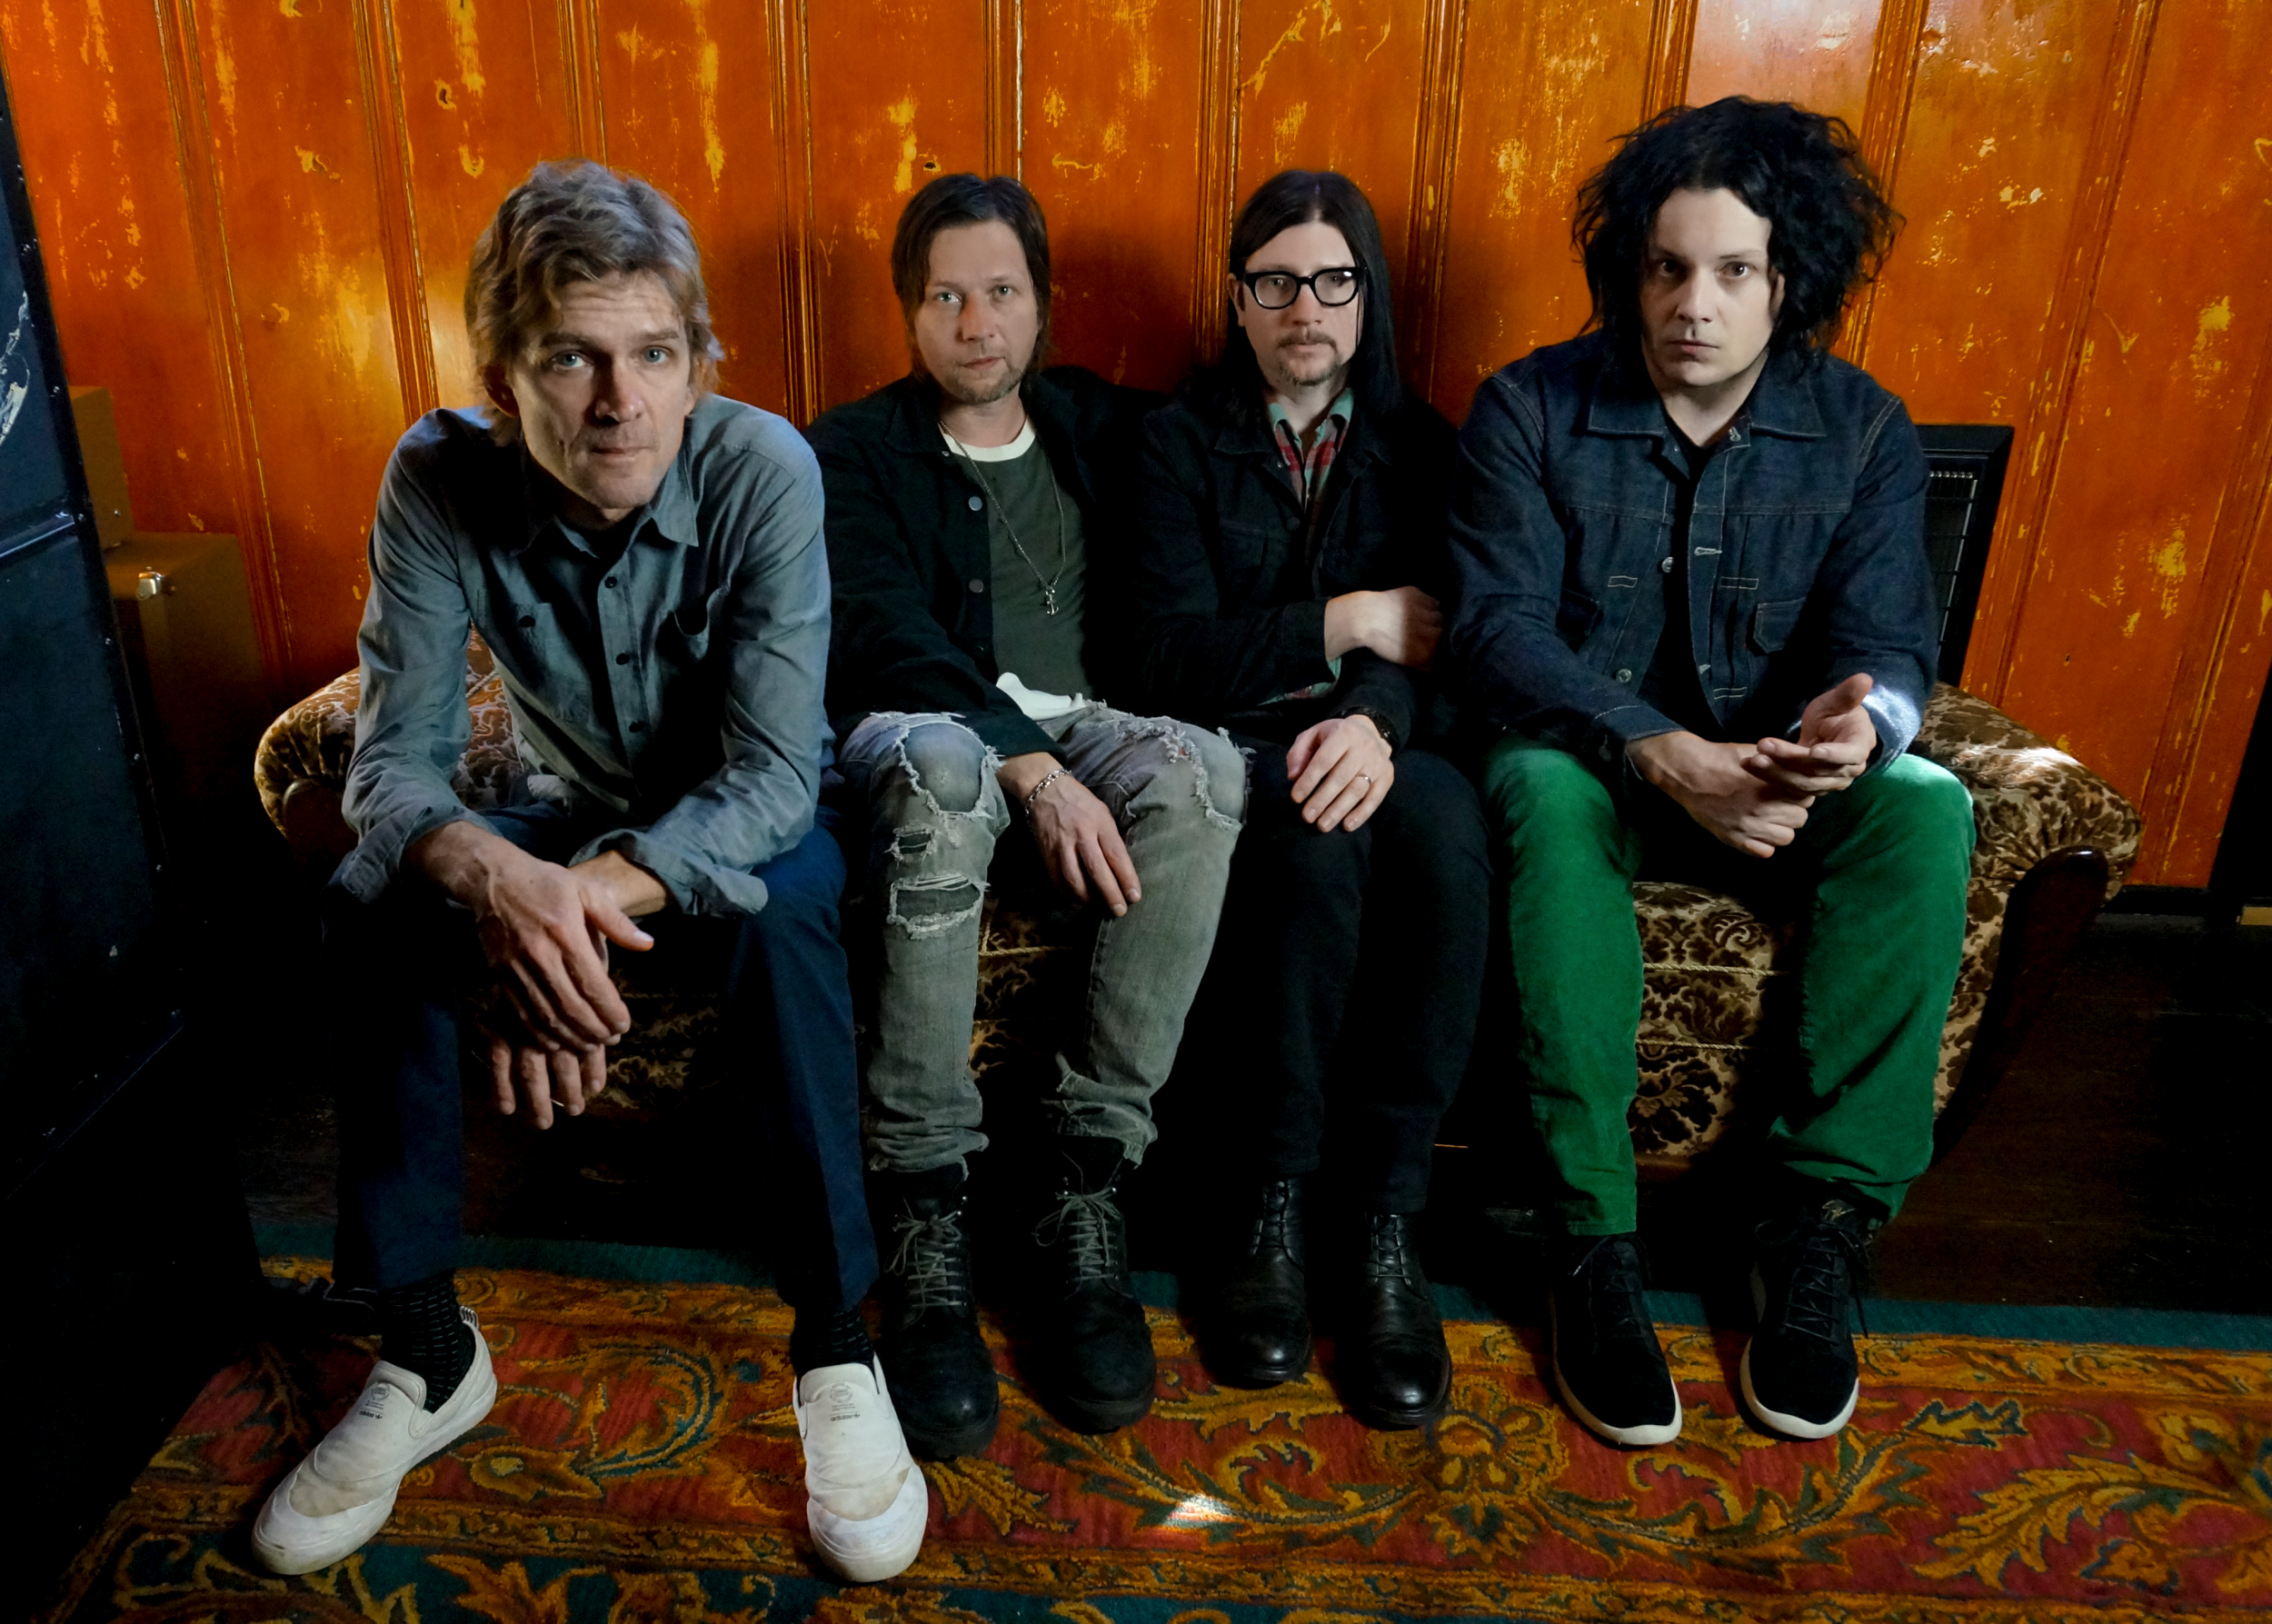 The Raconteurs' Jack White and Brendan Benson: 'Shockingly, it's